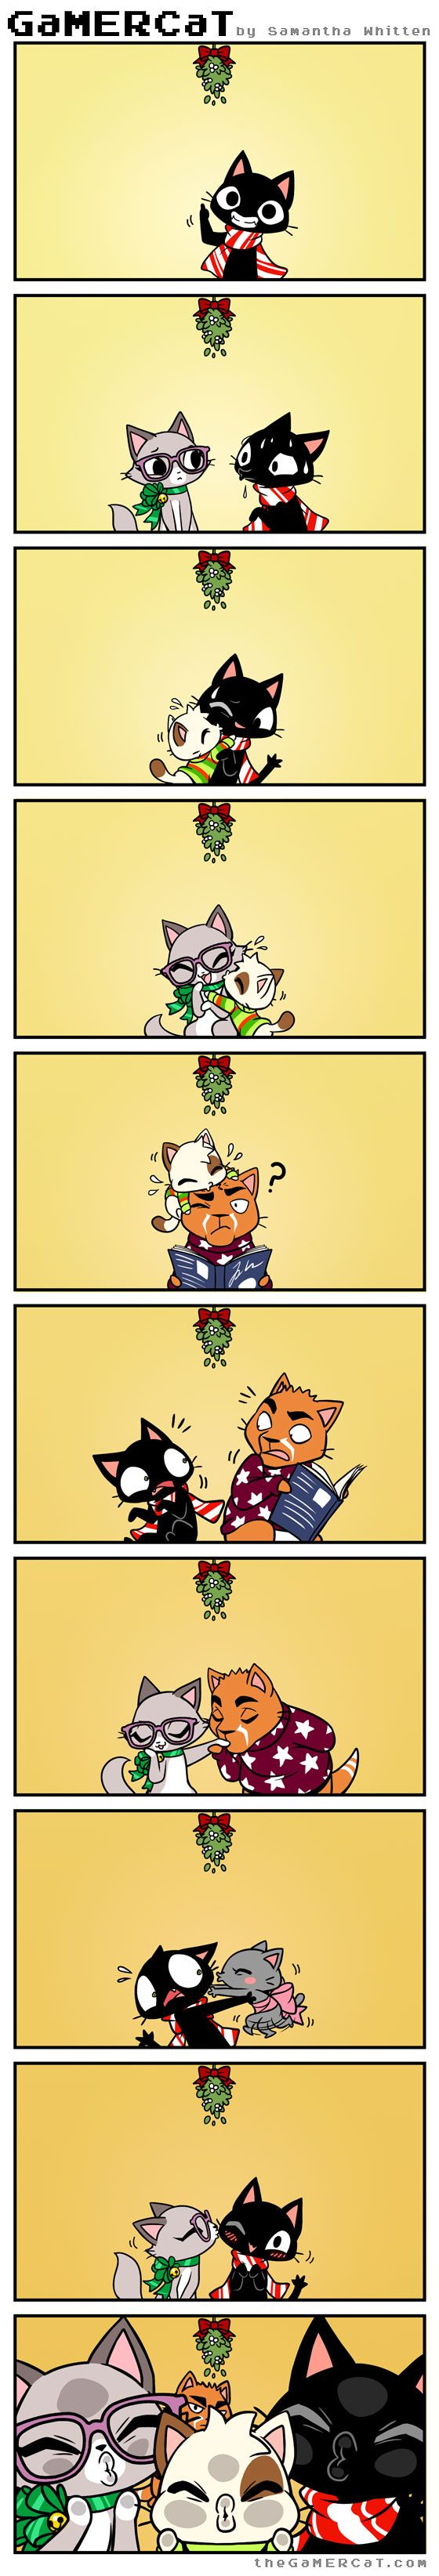 Mistletoe Mayhem I love these comics so much. lightens my day every time i see one